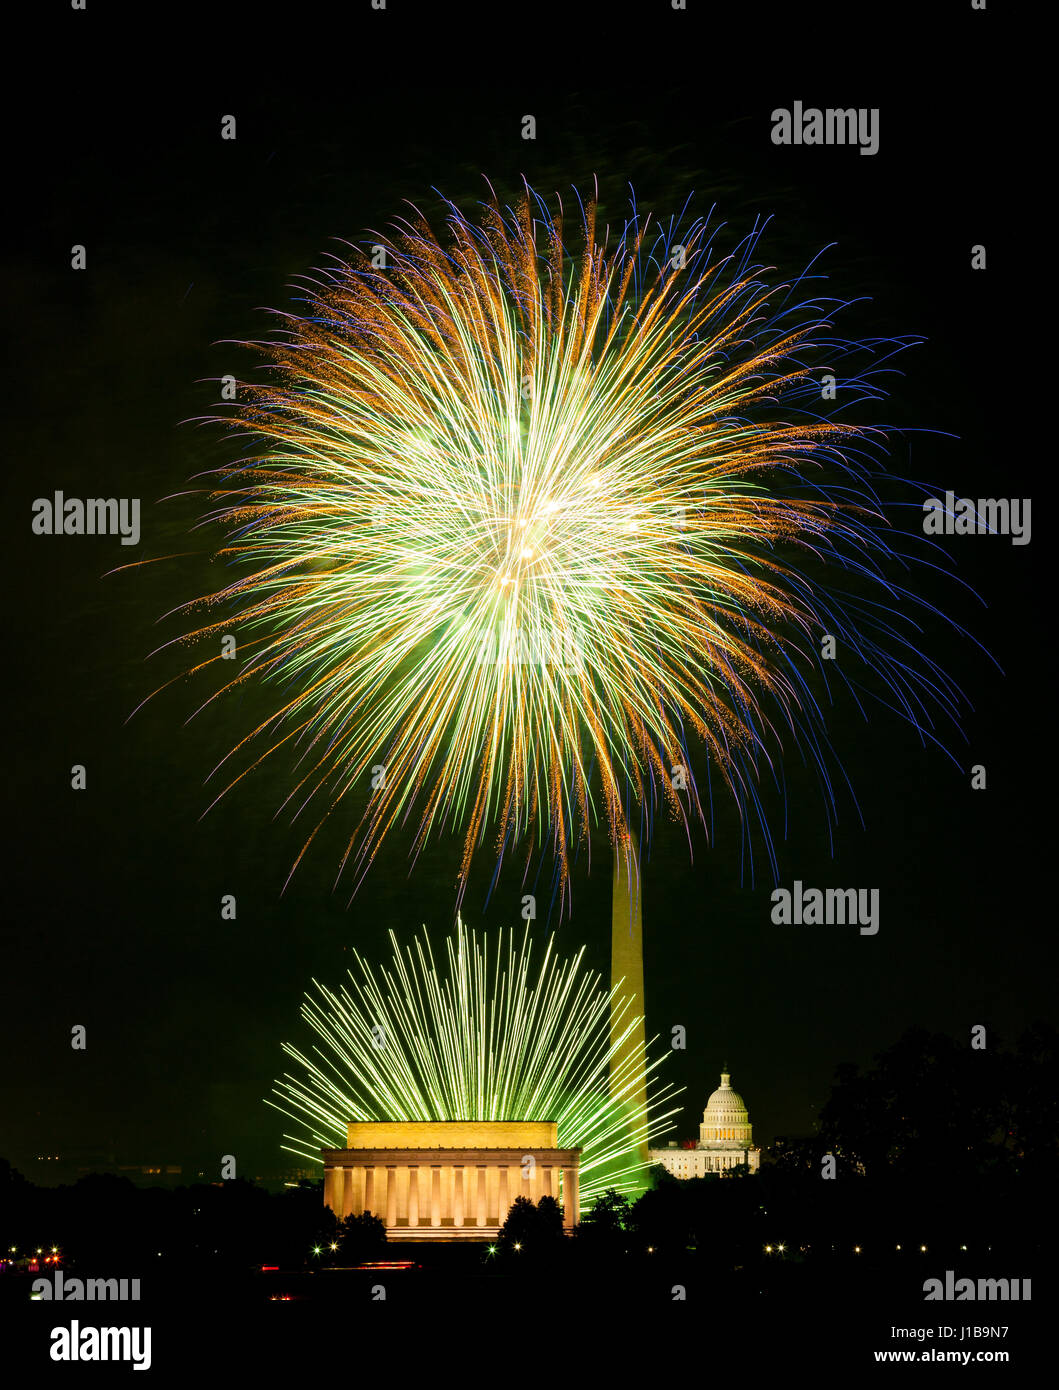 4th July Independence Day fireworks celebrations over monuments in Washington DC, USA - Stock Image